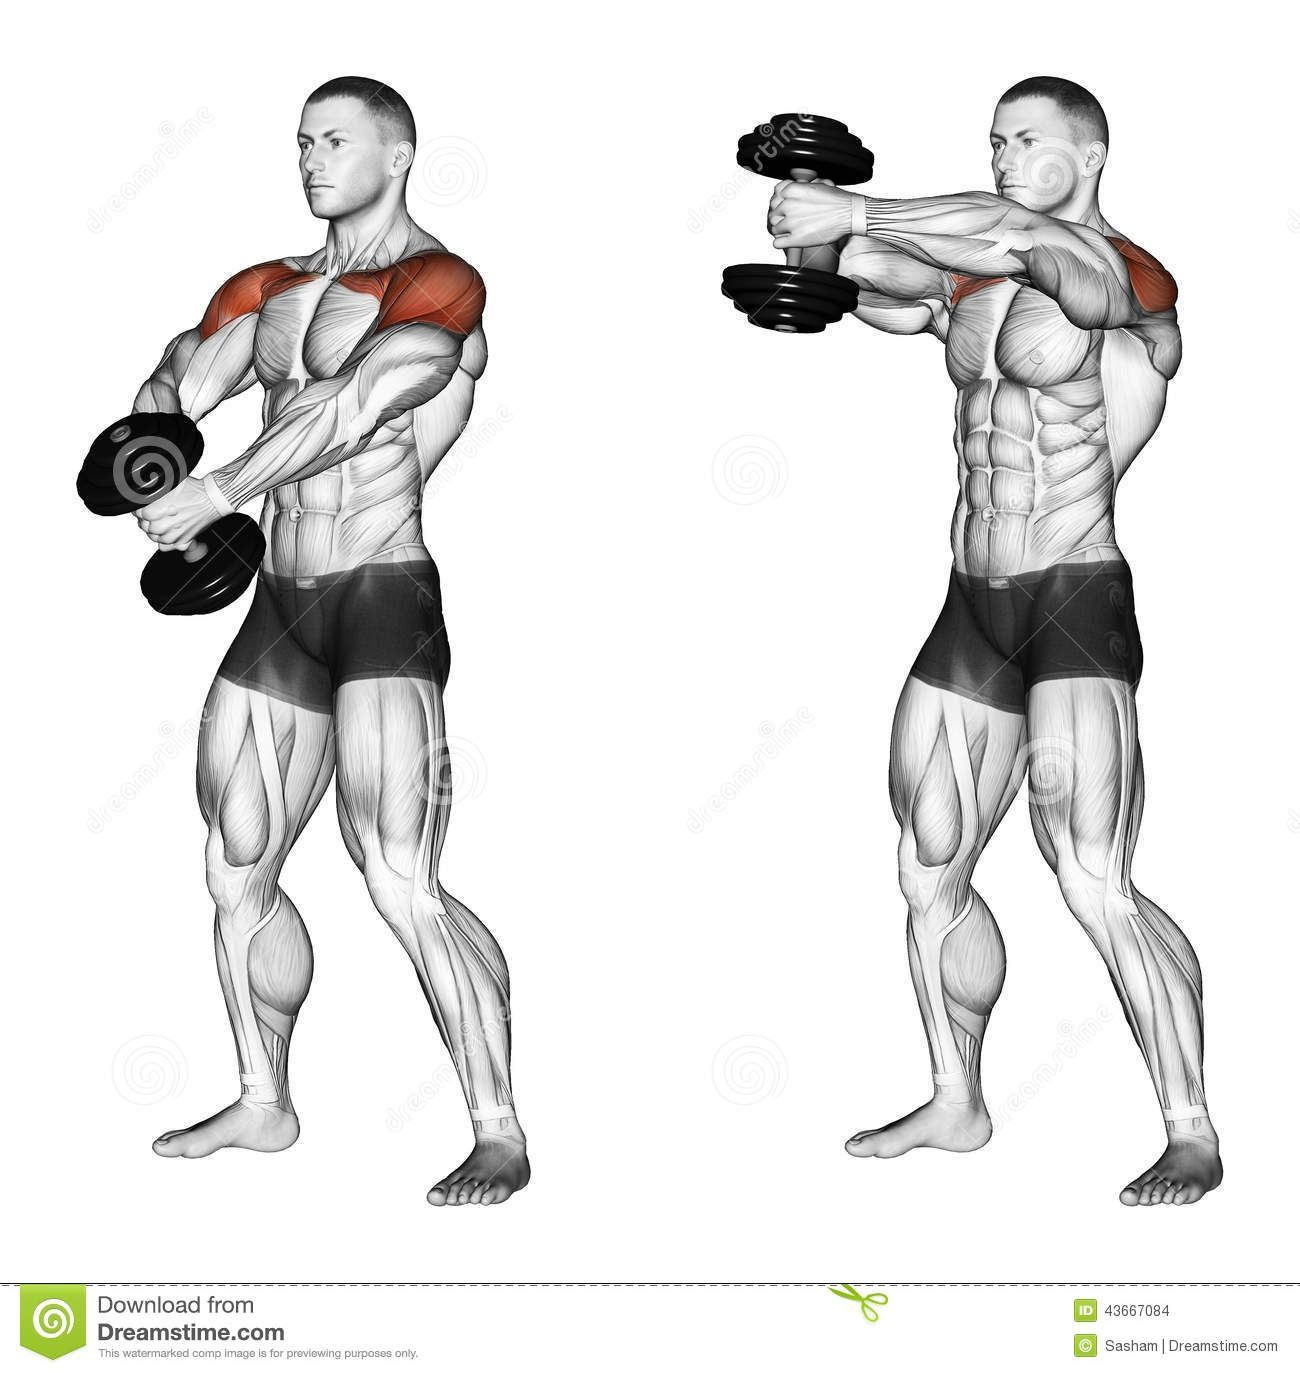 Photo about Ups of hands forward with one dumbbell. Exercising for bodybuilding. Target muscles are marked in red. Initial and final steps. Illustration of forward, marked, clavicular - 43667084 #dumbbellexercises